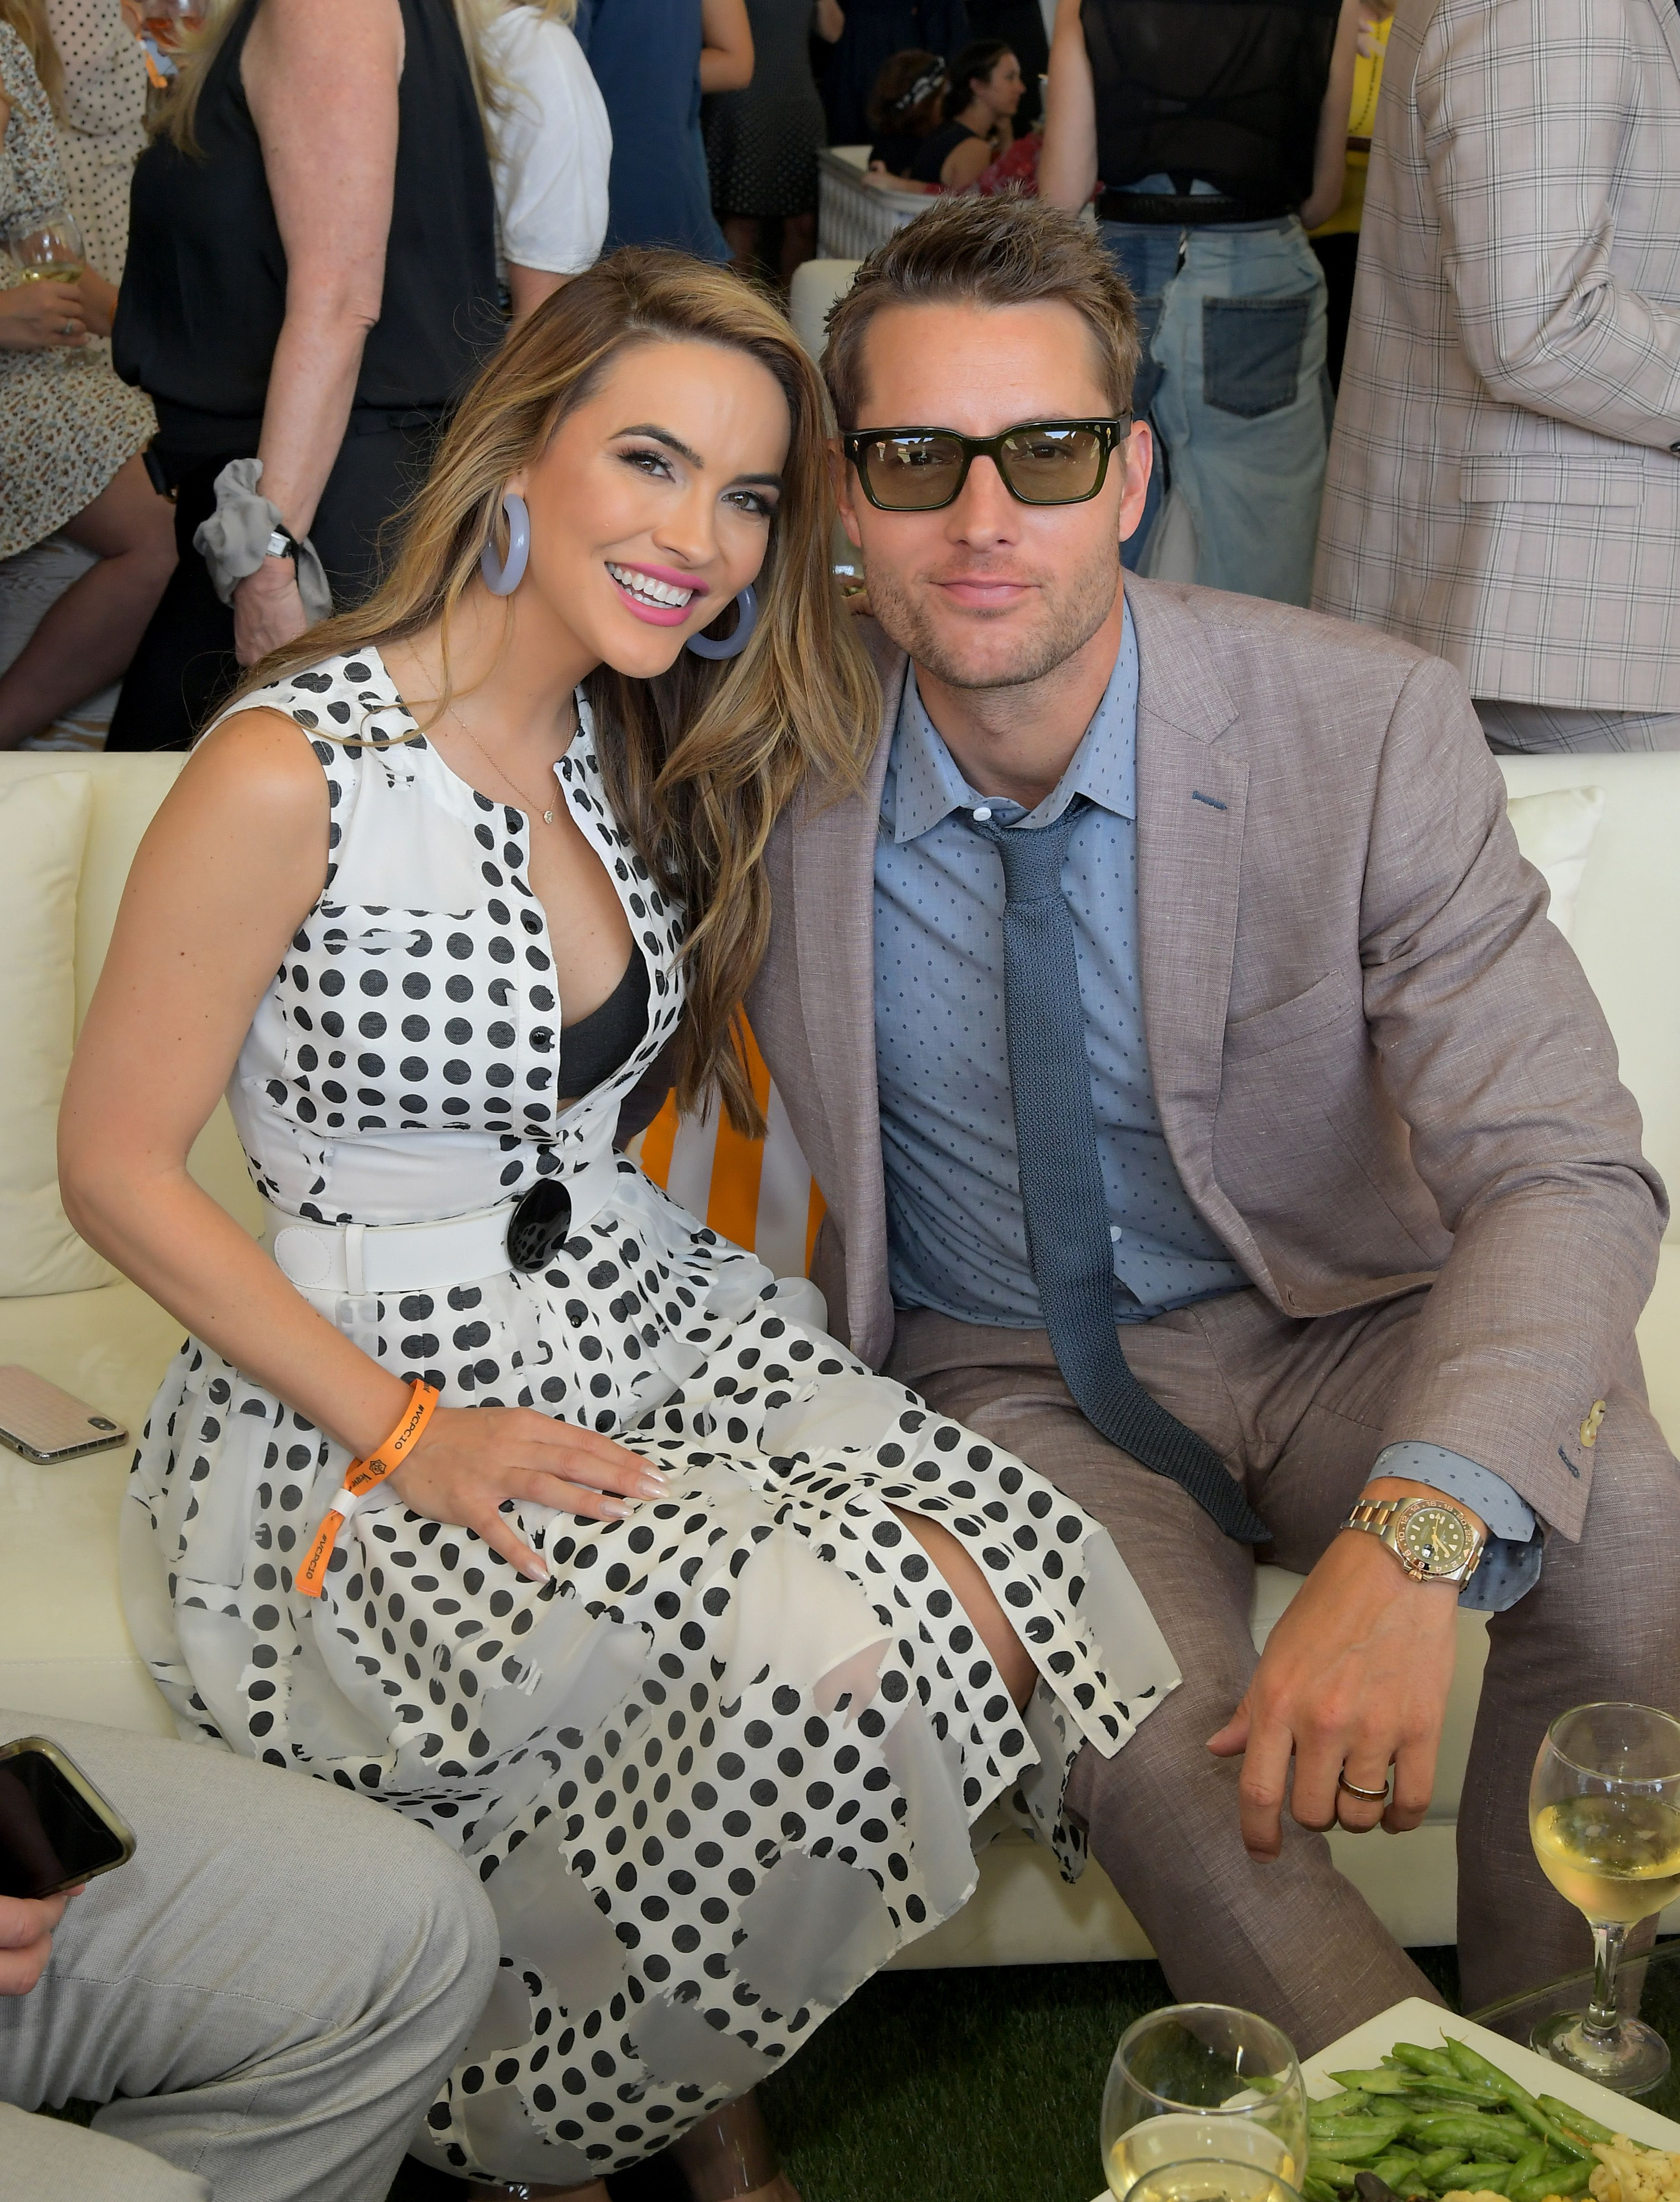 Justin Hartley and ex-wife Chrishell Stause at the 10th Annual Veuve Clicquot Polo Classic in Los Angeles in October 2019 | Source: Getty Images